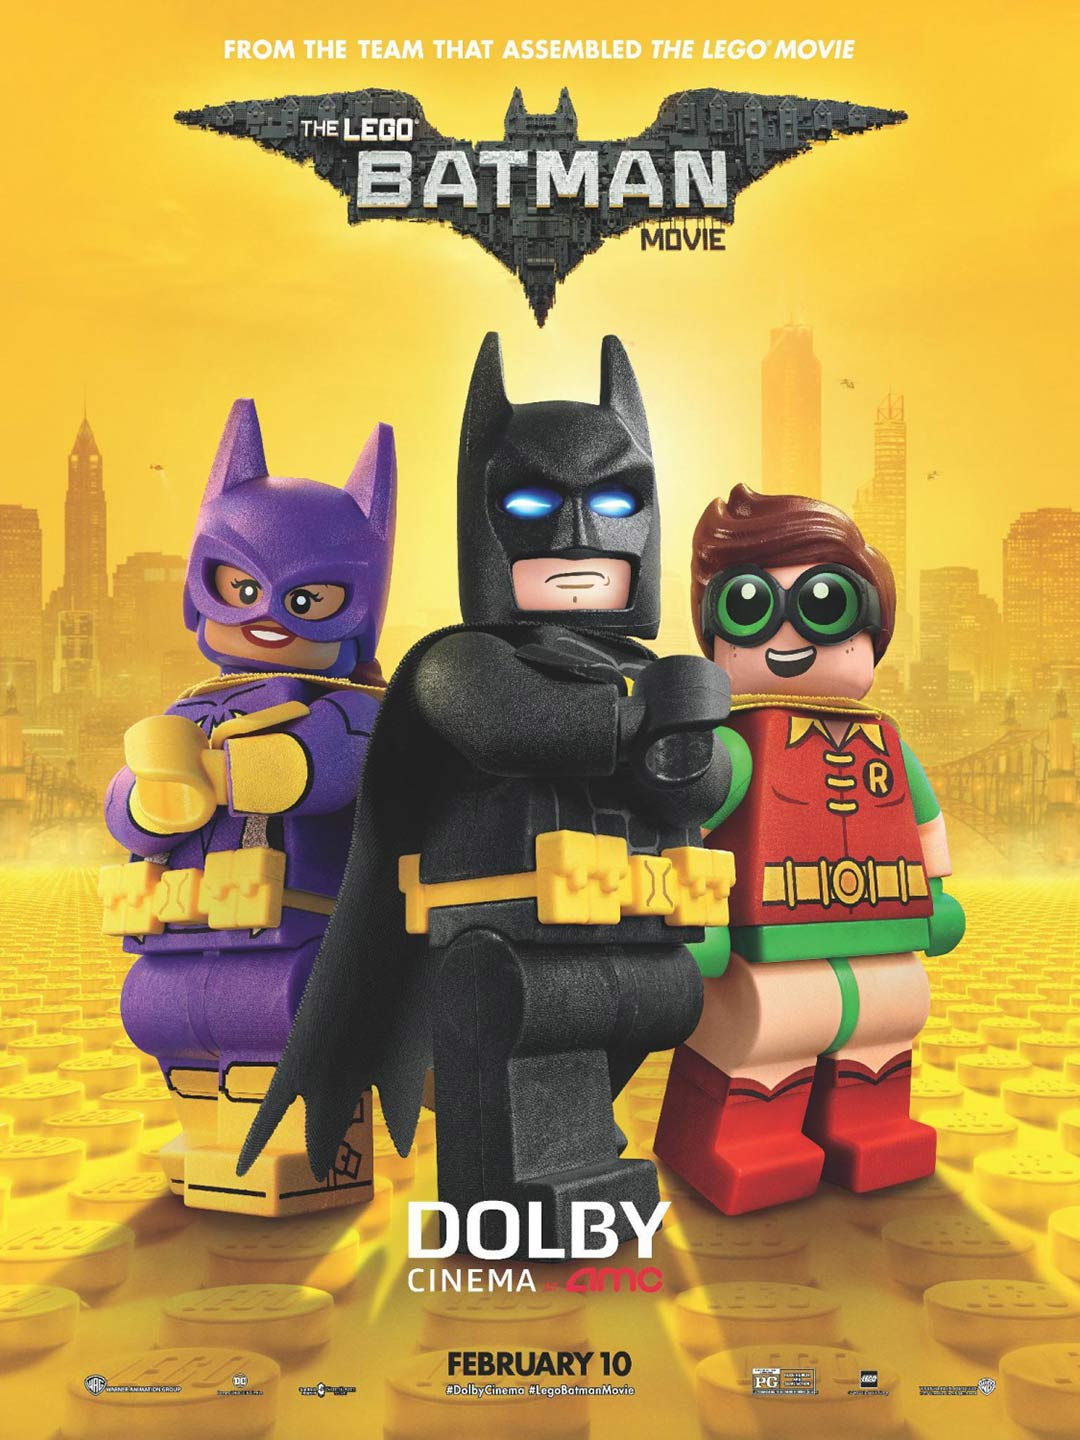 The Lego Batman Movie Poster #26